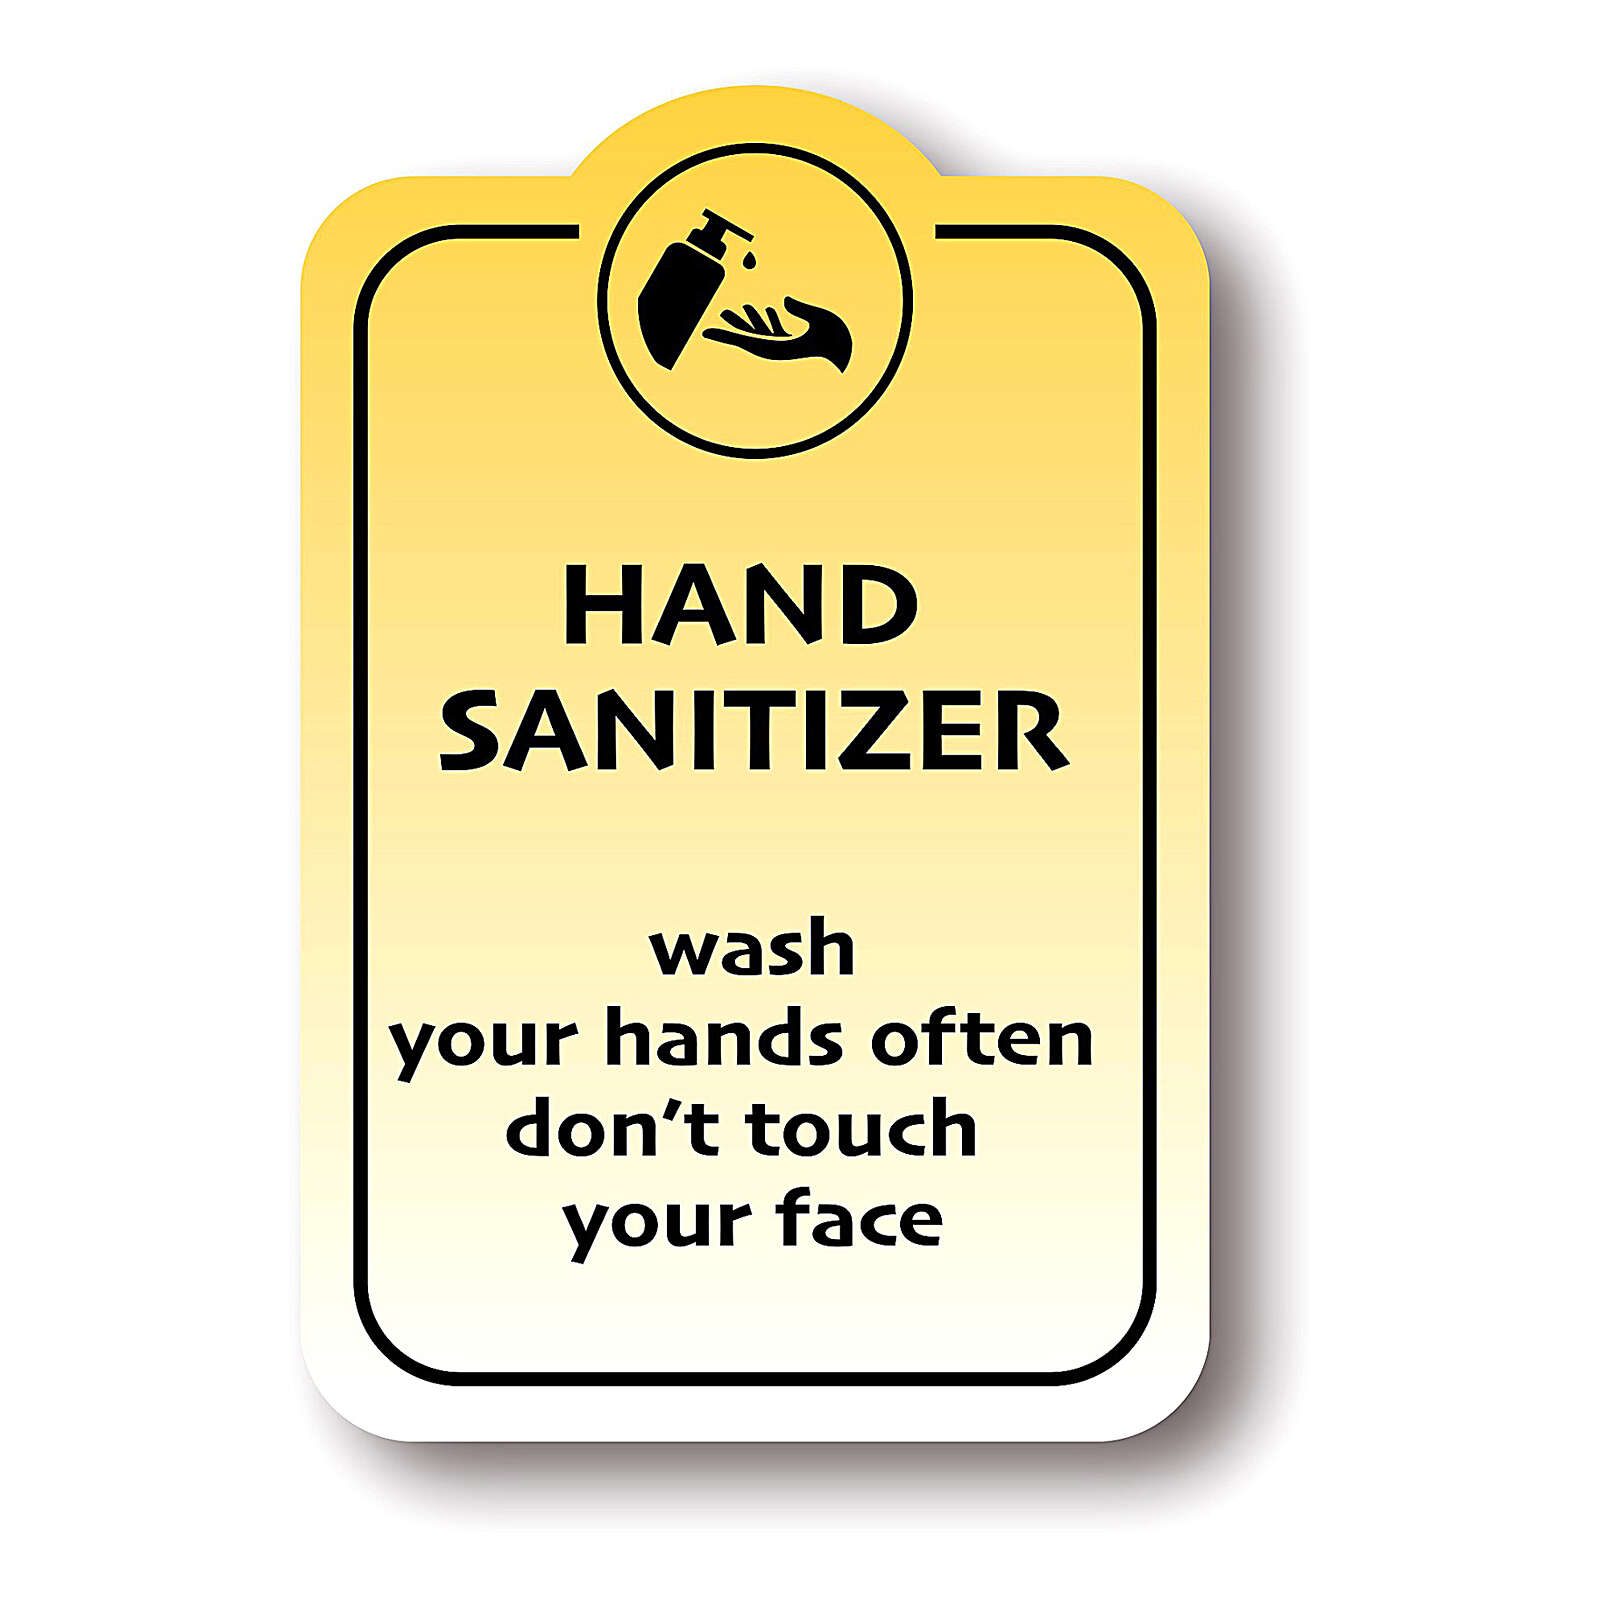 Removable stickers 4 PIECES - HAND SANITIZER WASH YOUR HANDS 3